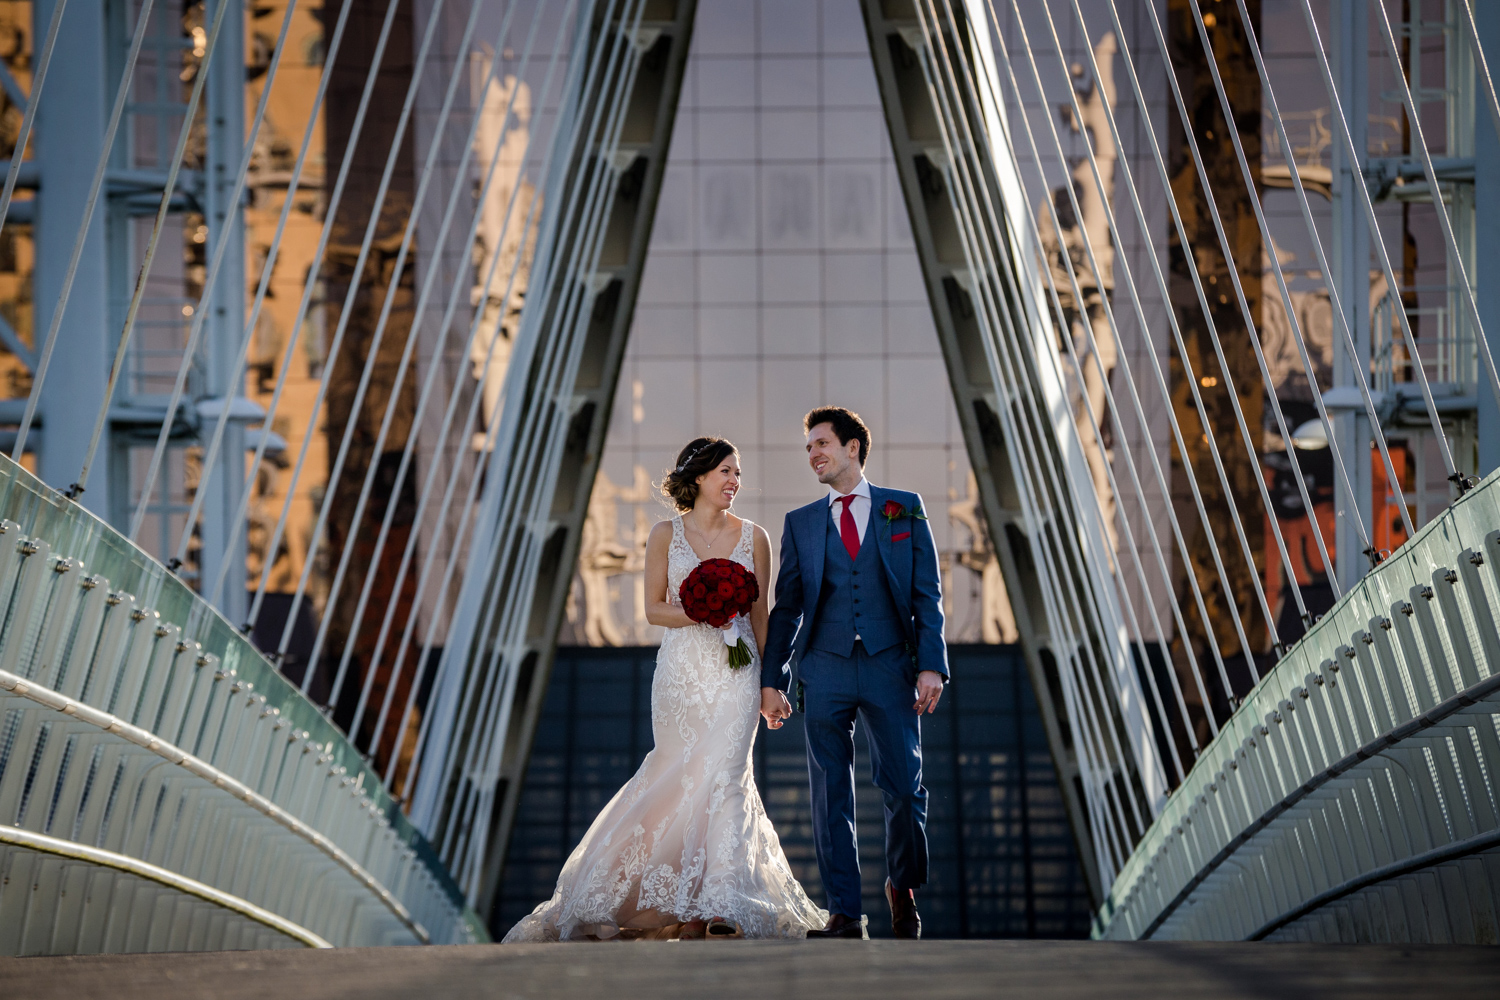 The bride and groom on the bridge during their Lowry Wedding